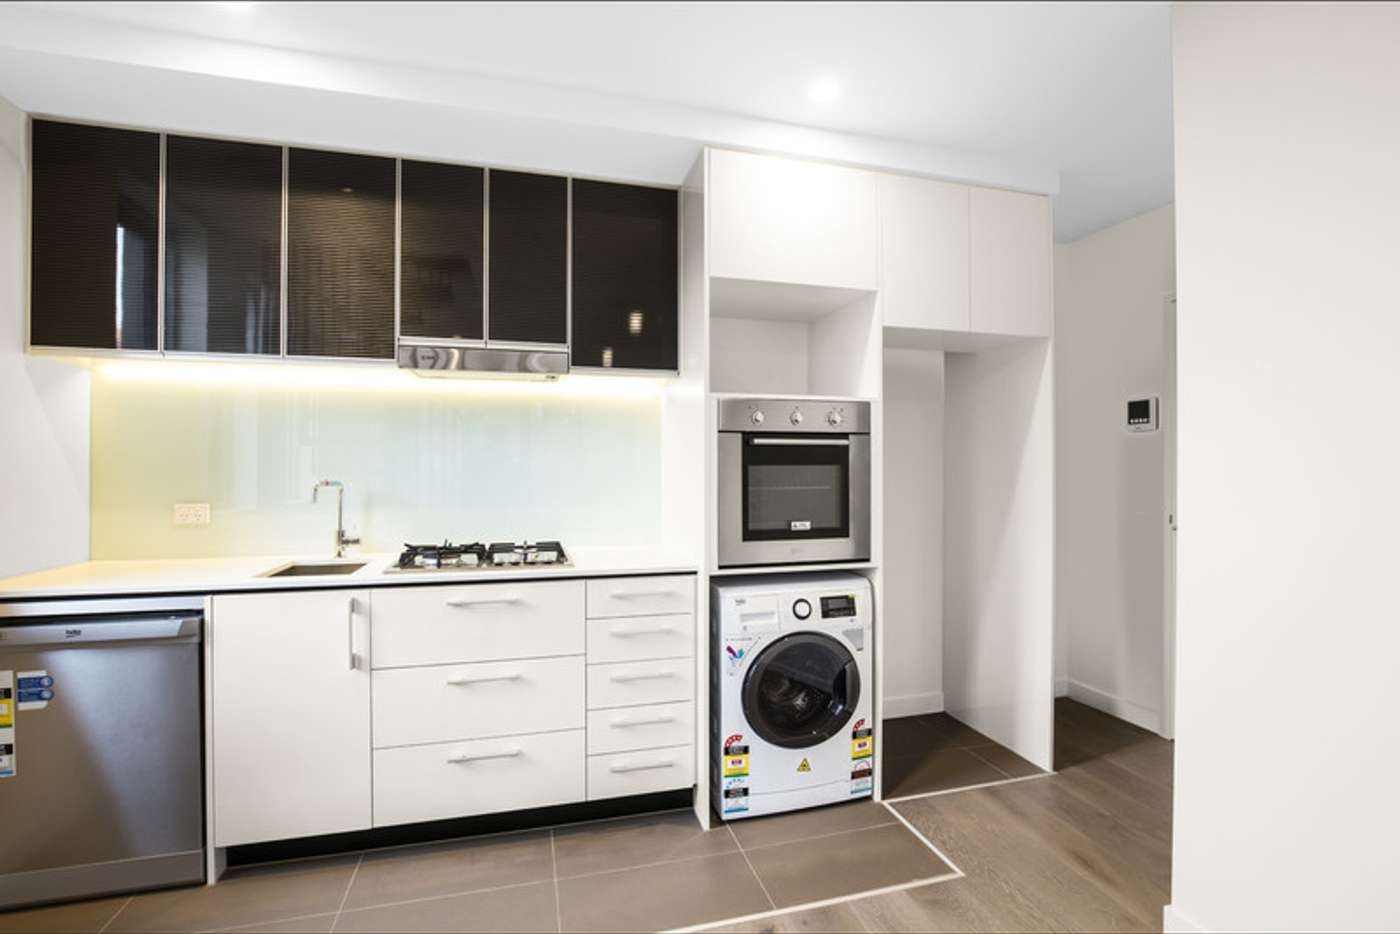 Main view of Homely apartment listing, 112/423-435 Spencer Street, West Melbourne VIC 3003